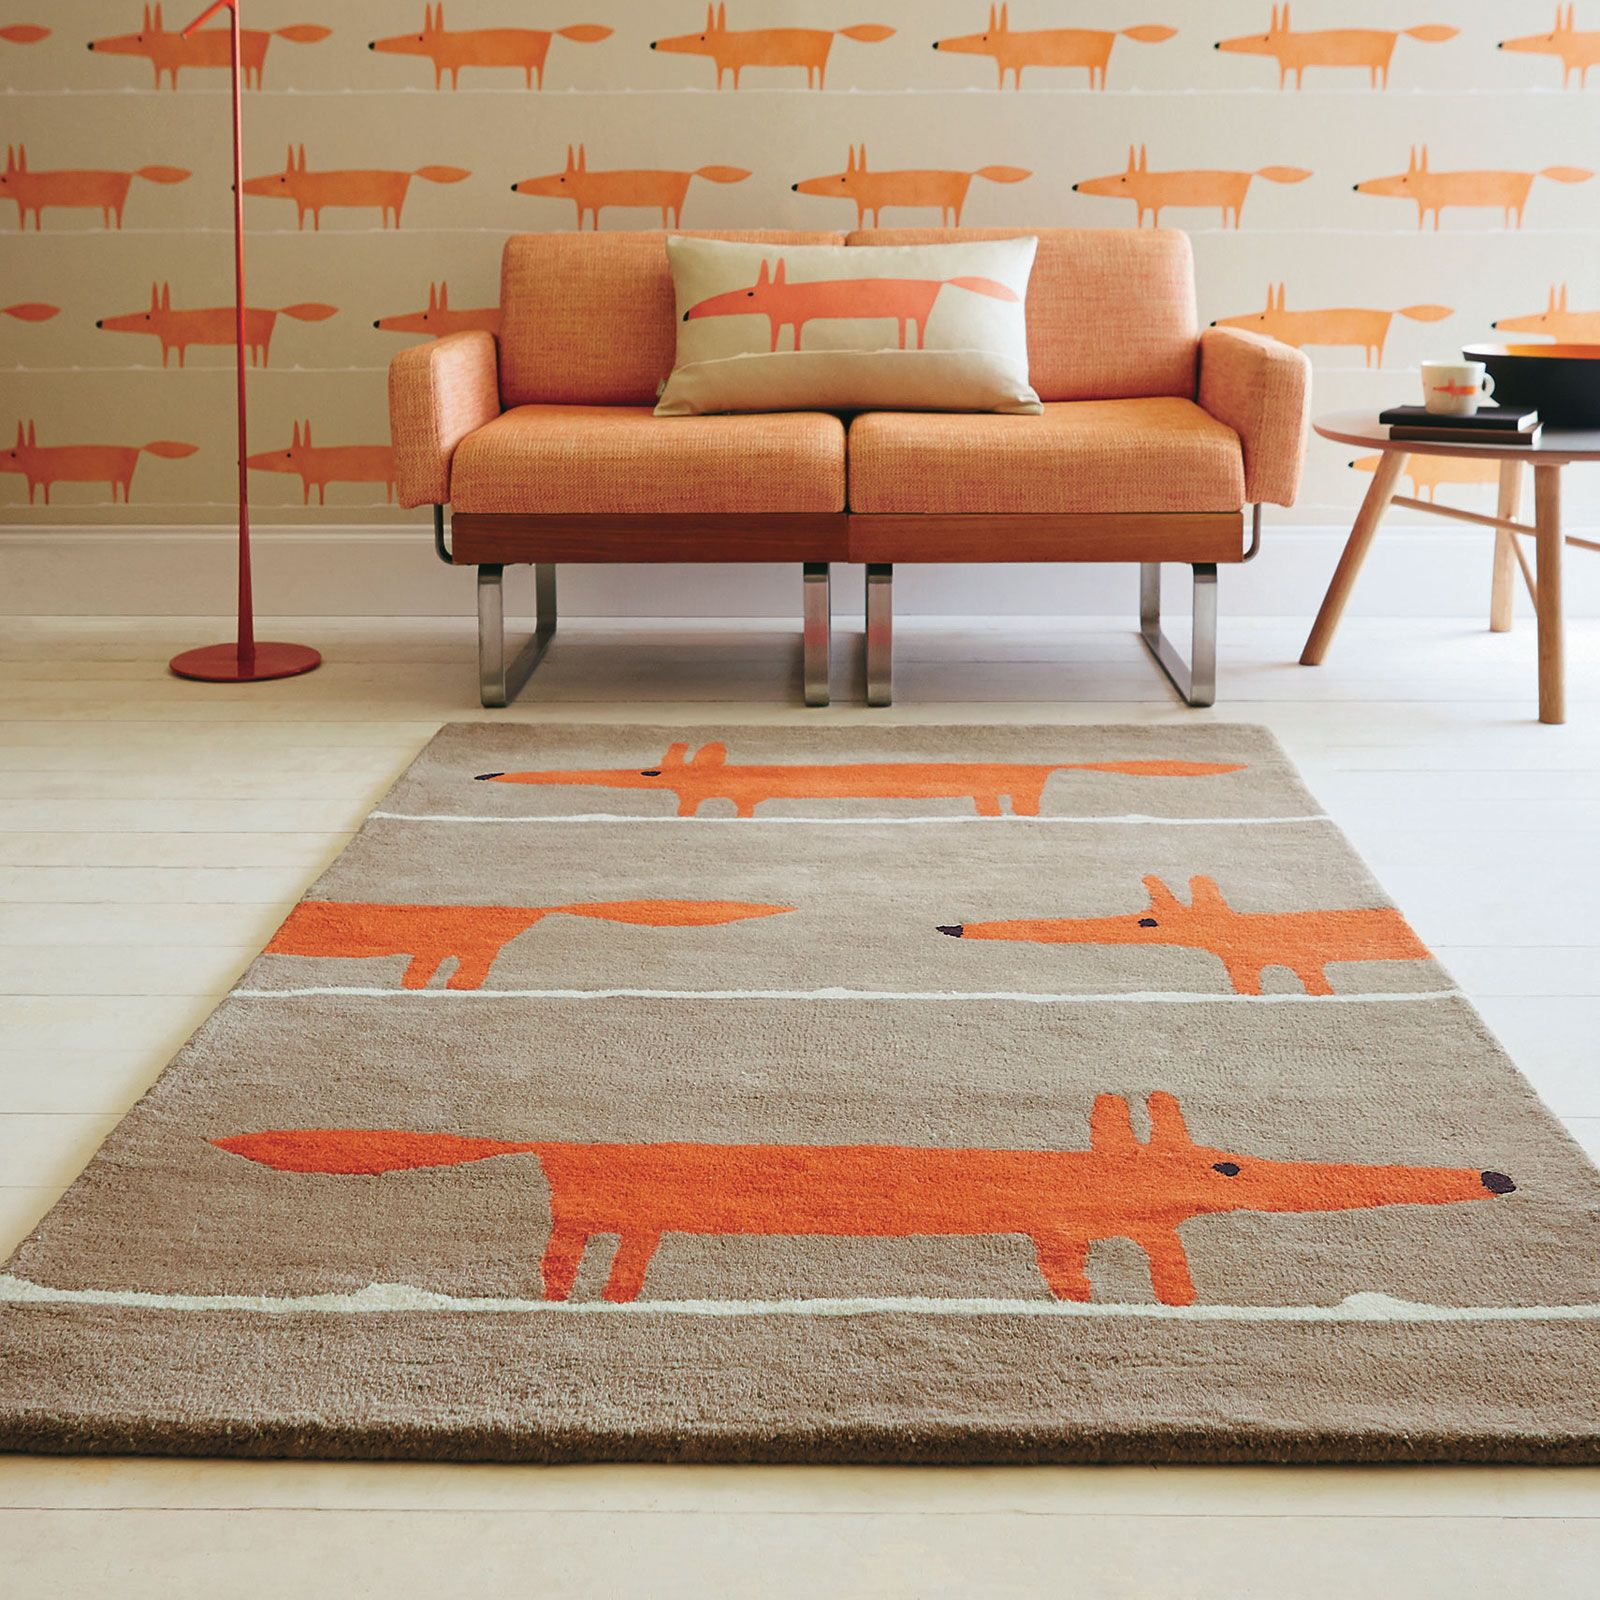 1000 Images About Animal Print Rugs On Pinterest Madagascar